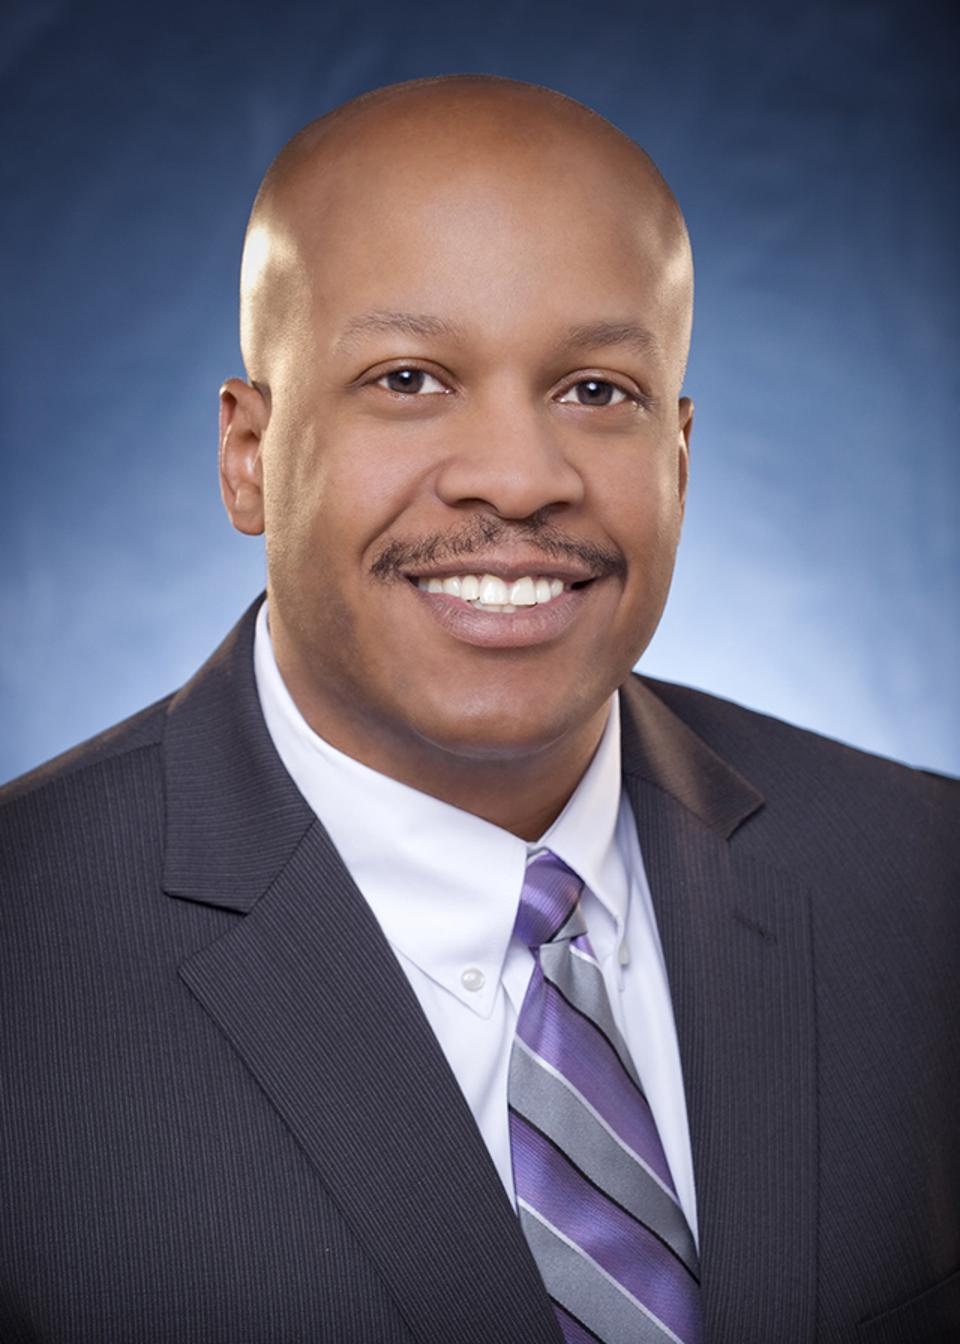 David McLeod, Chief Information Security Officer of Cox Enterprises.